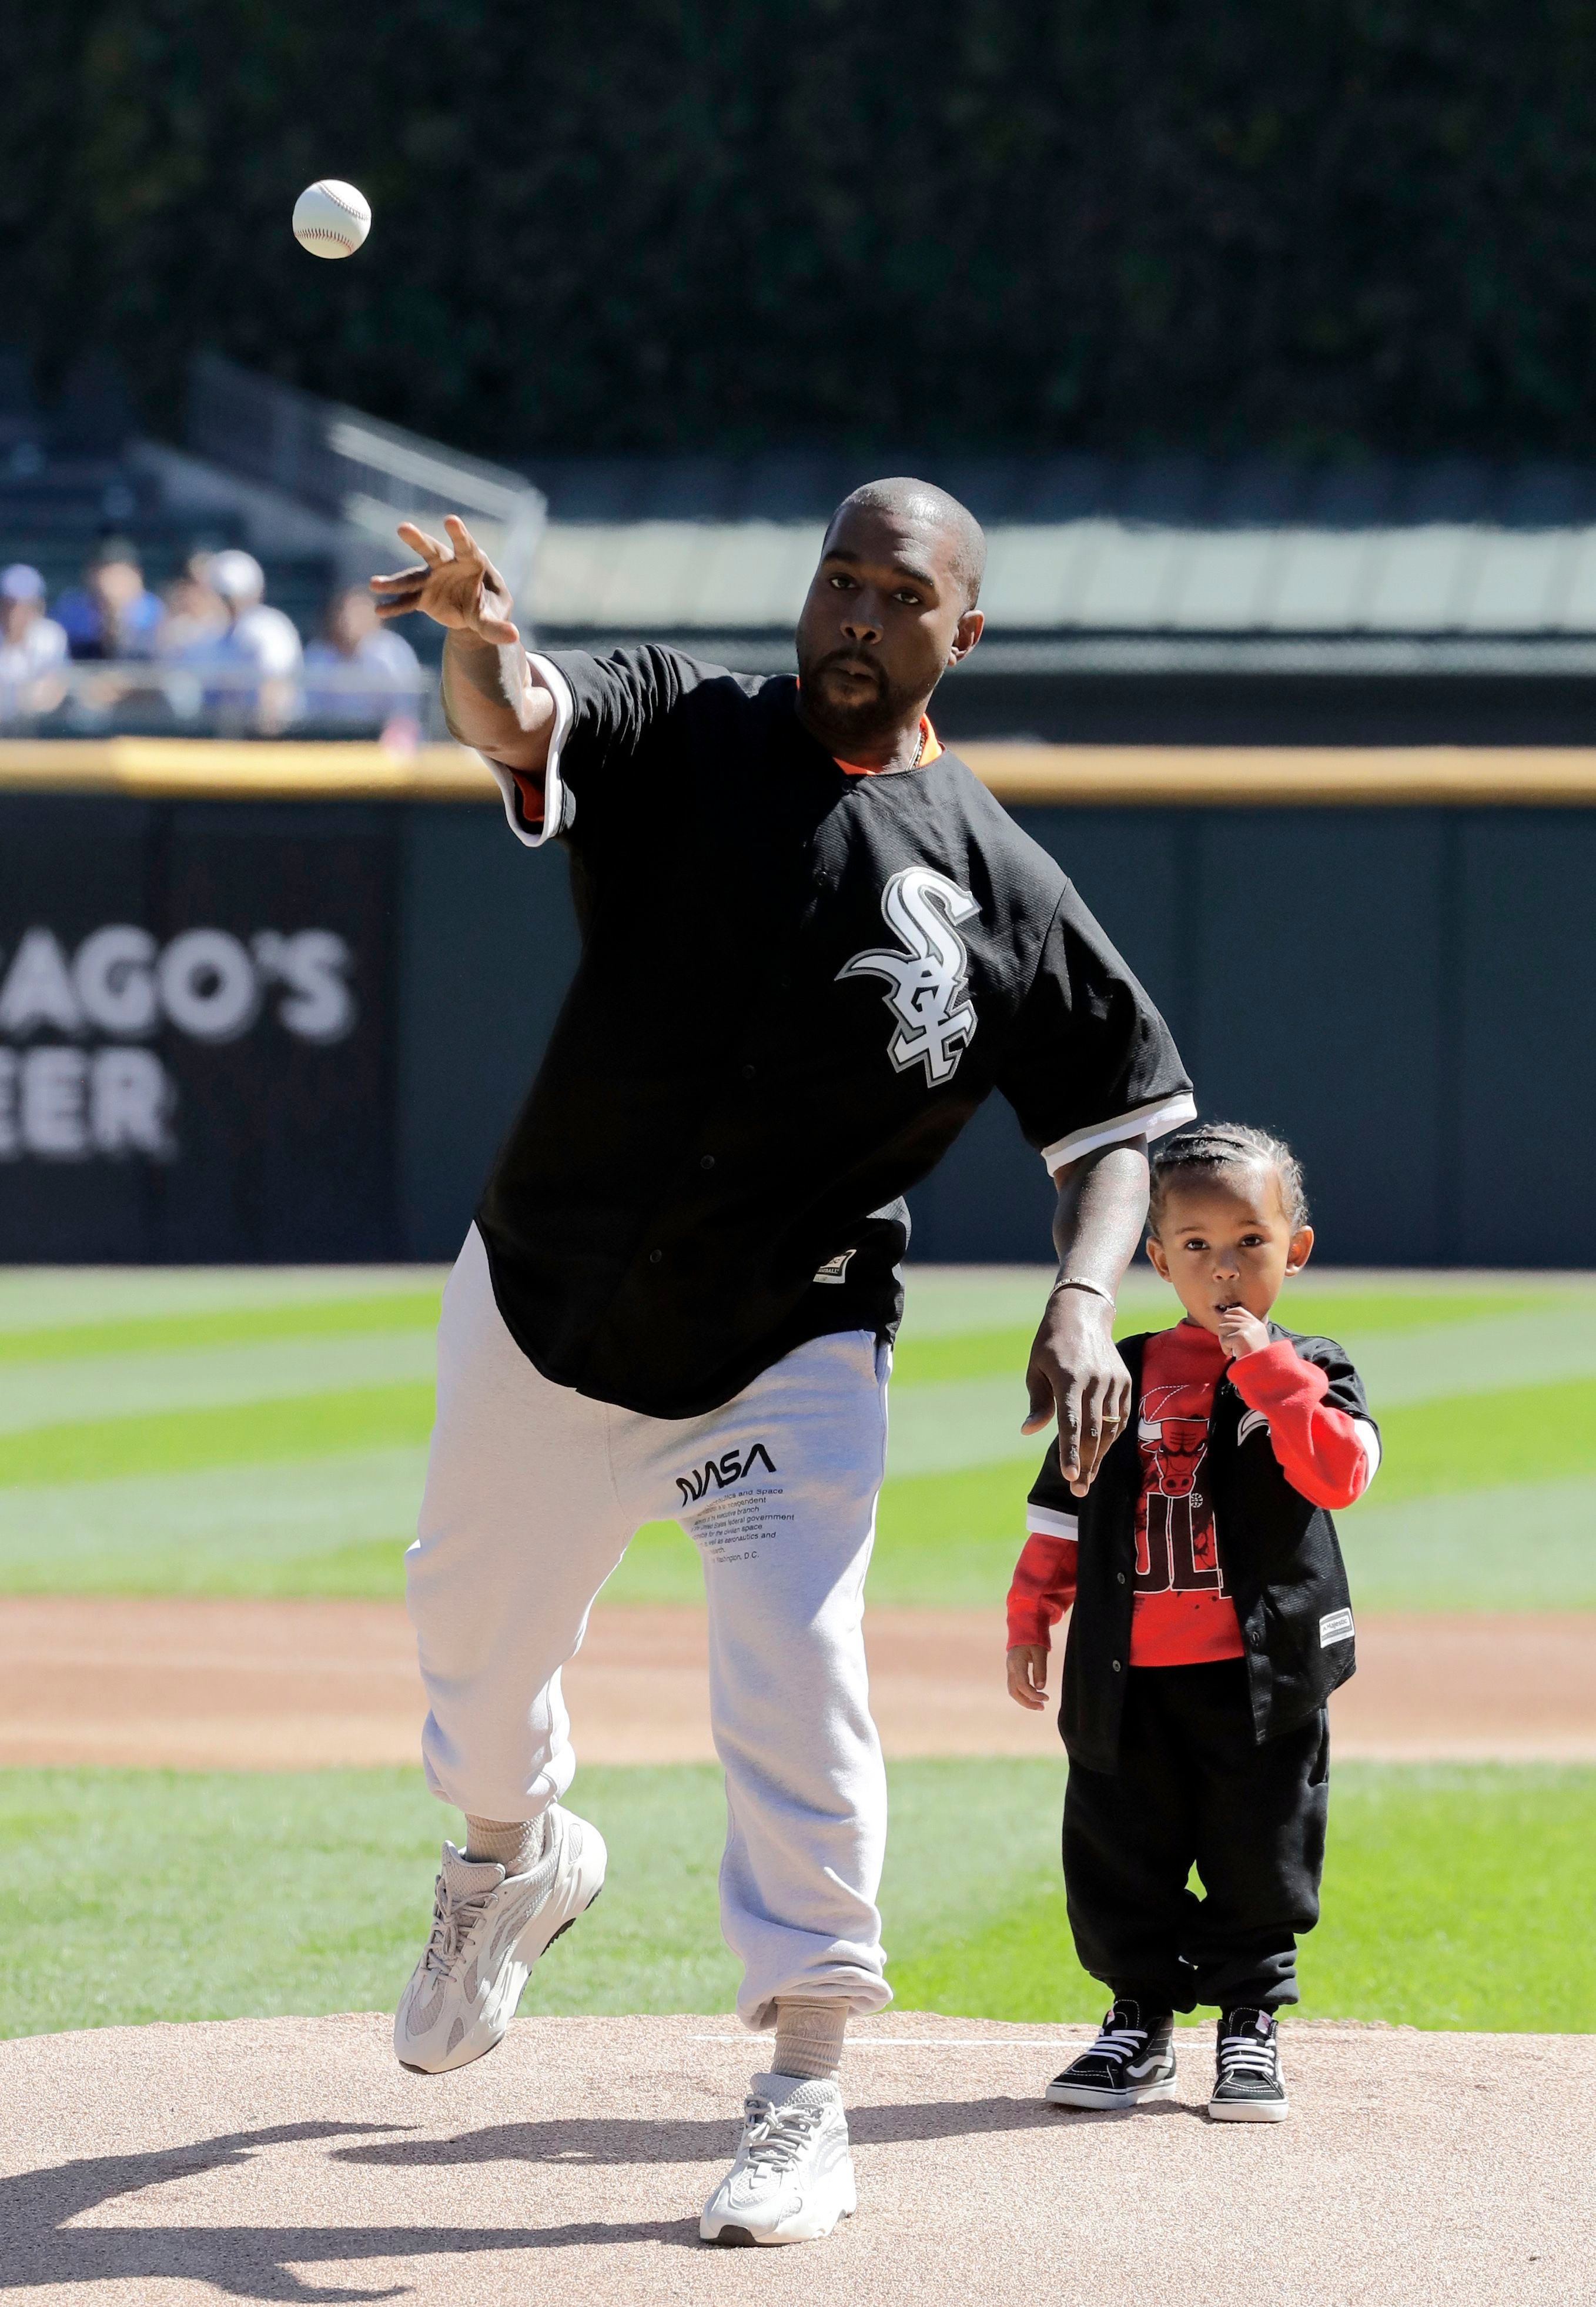 Kanye West and his little boy Saint threw the first pitch at a Chicago White Sox game in Chicago on Sept. 23, 2018.